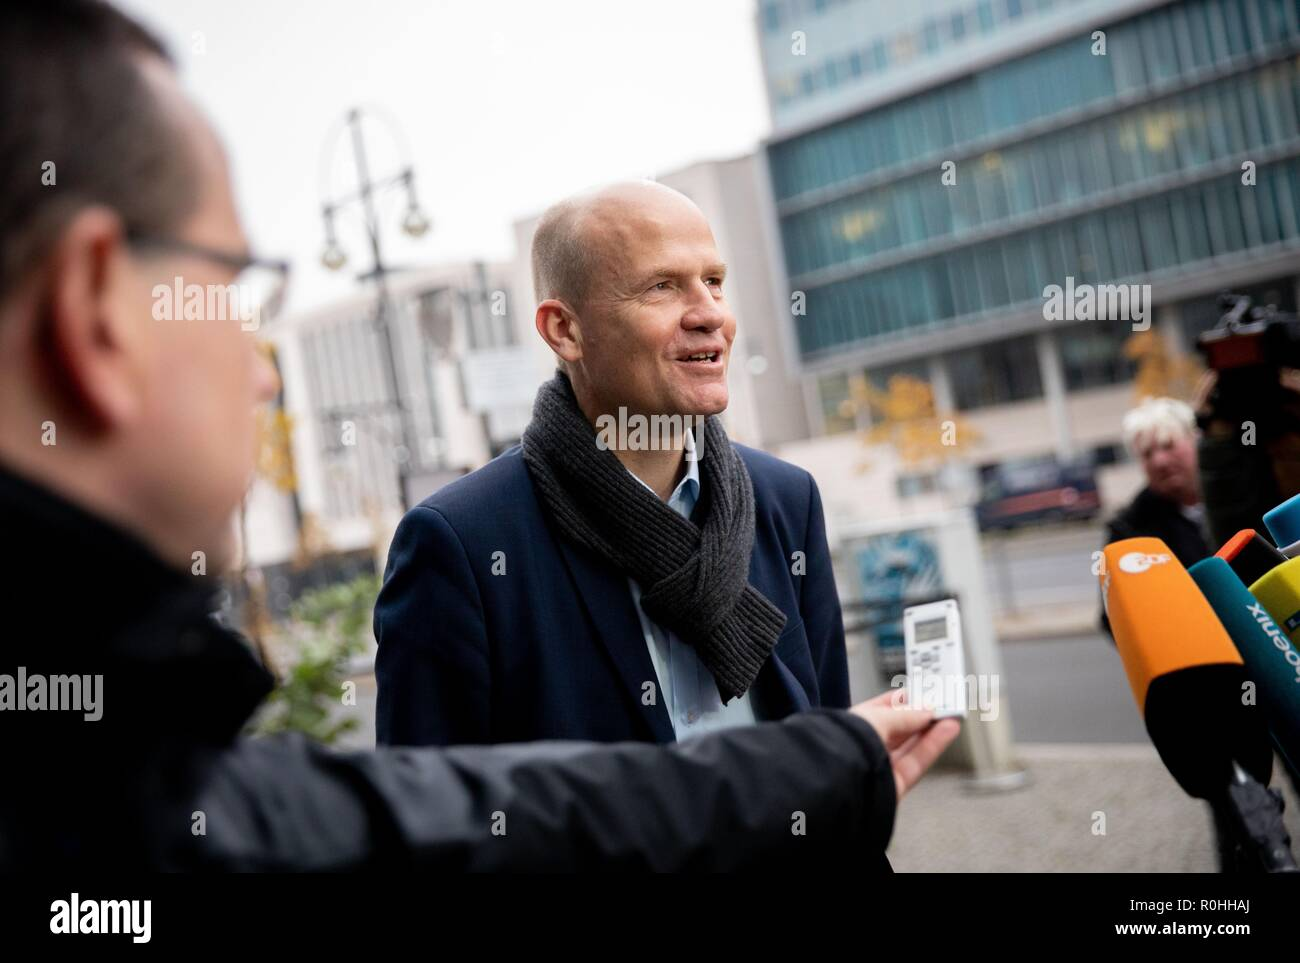 Berlin, Germany. 05th Nov, 2018. Ralph Brinkhaus (CDU), chairman of the CDU/CSU parliamentary group in the Bundestag, speaks to the media representatives in front of the CDU headquarters, the Konrad Adenauer House. This is where the party leadership meets for a closed conference. Credit: Kay Nietfeld/dpa/Alamy Live News - Stock Image